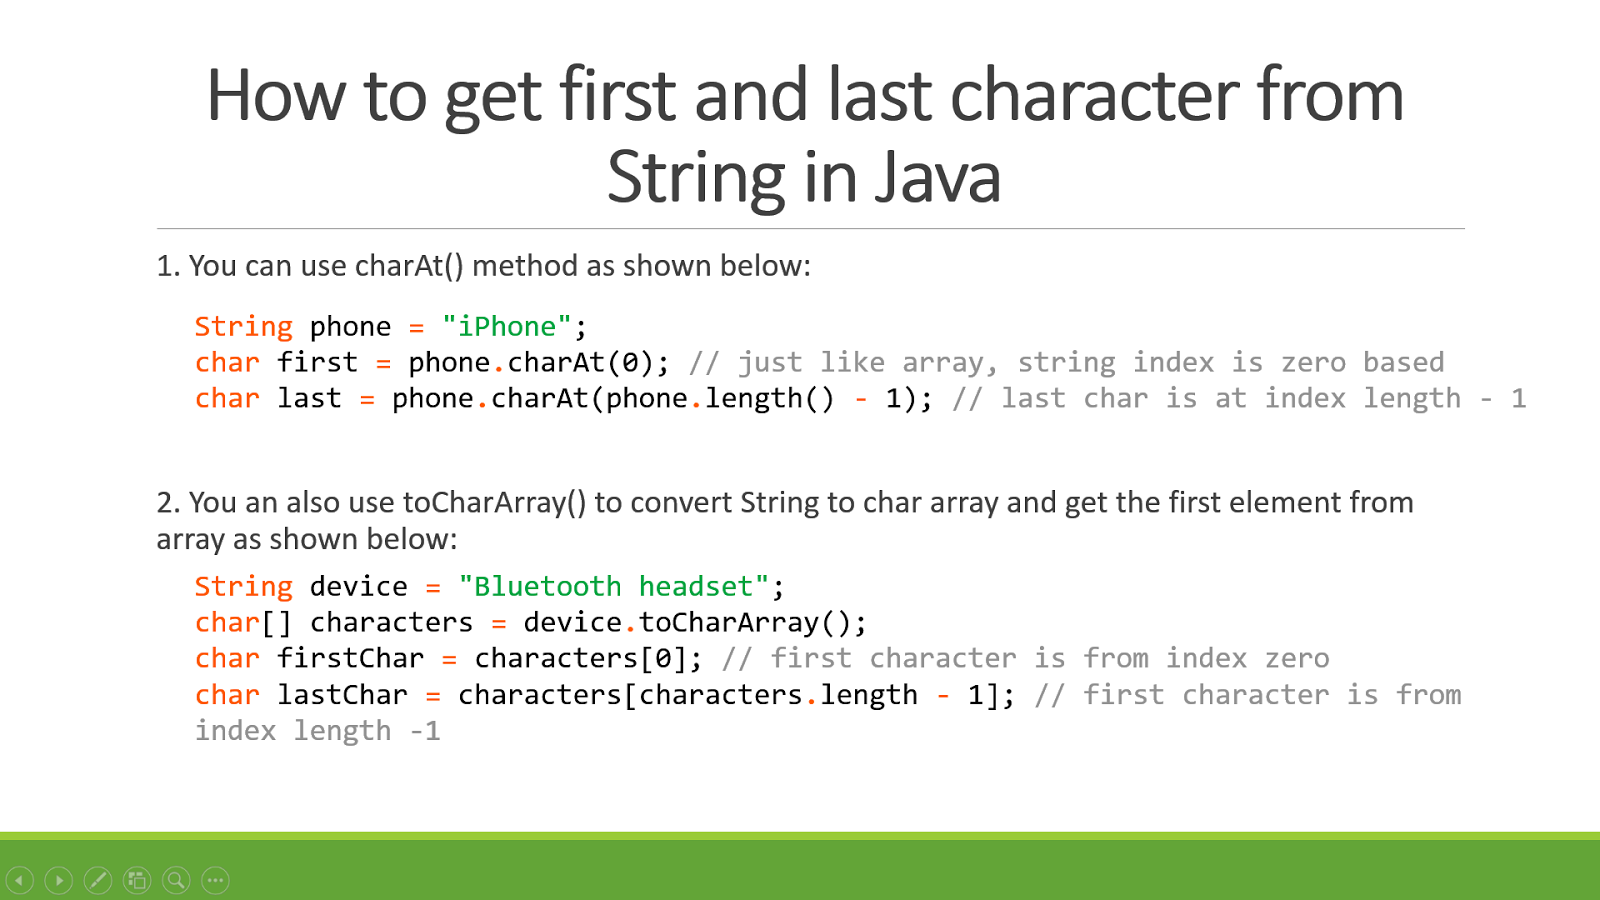 java string template - how to get first and last character of string in java